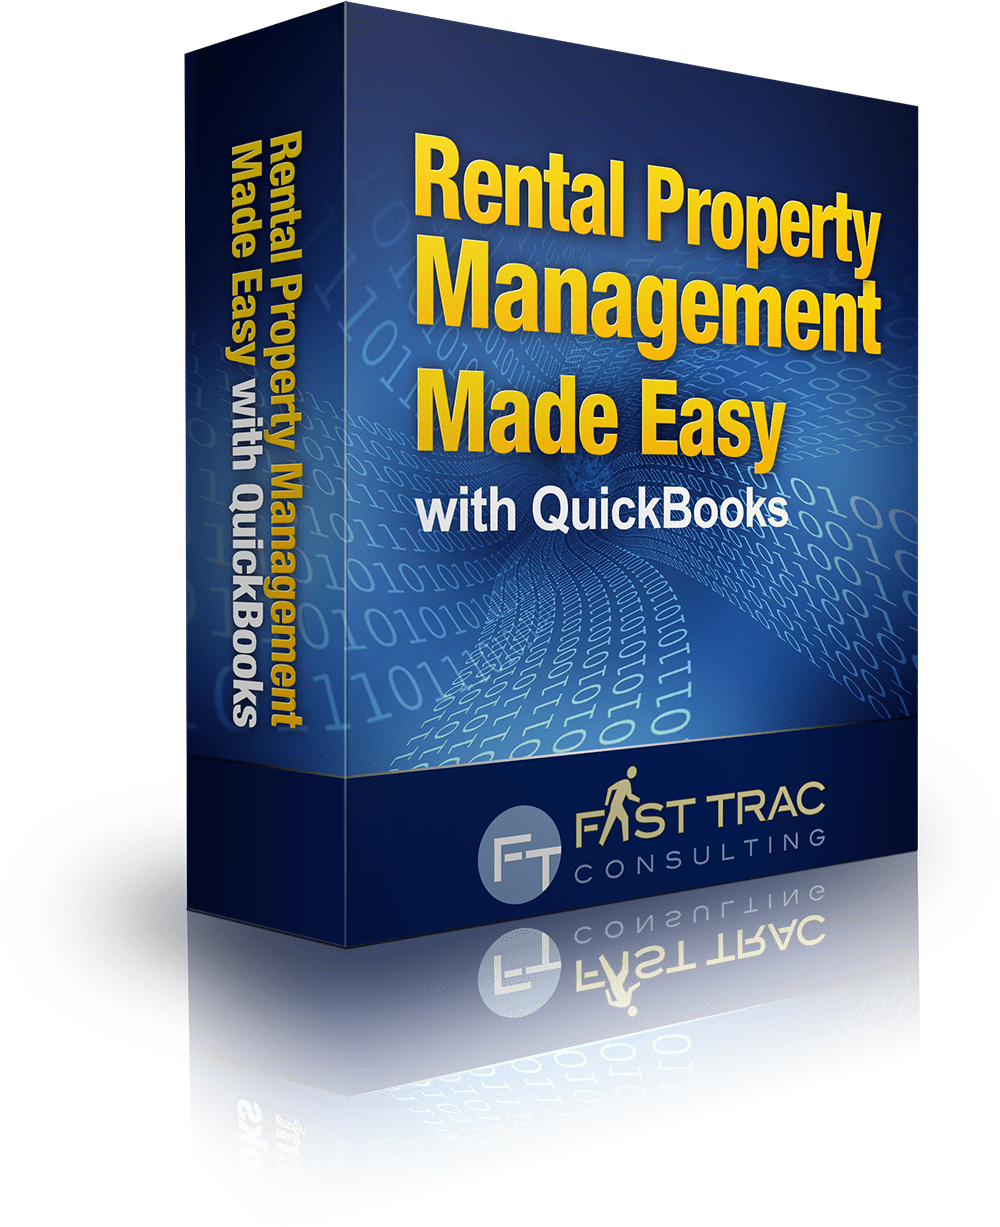 Rent Property: Rental Property Management Made Easy With QuickBooks Update